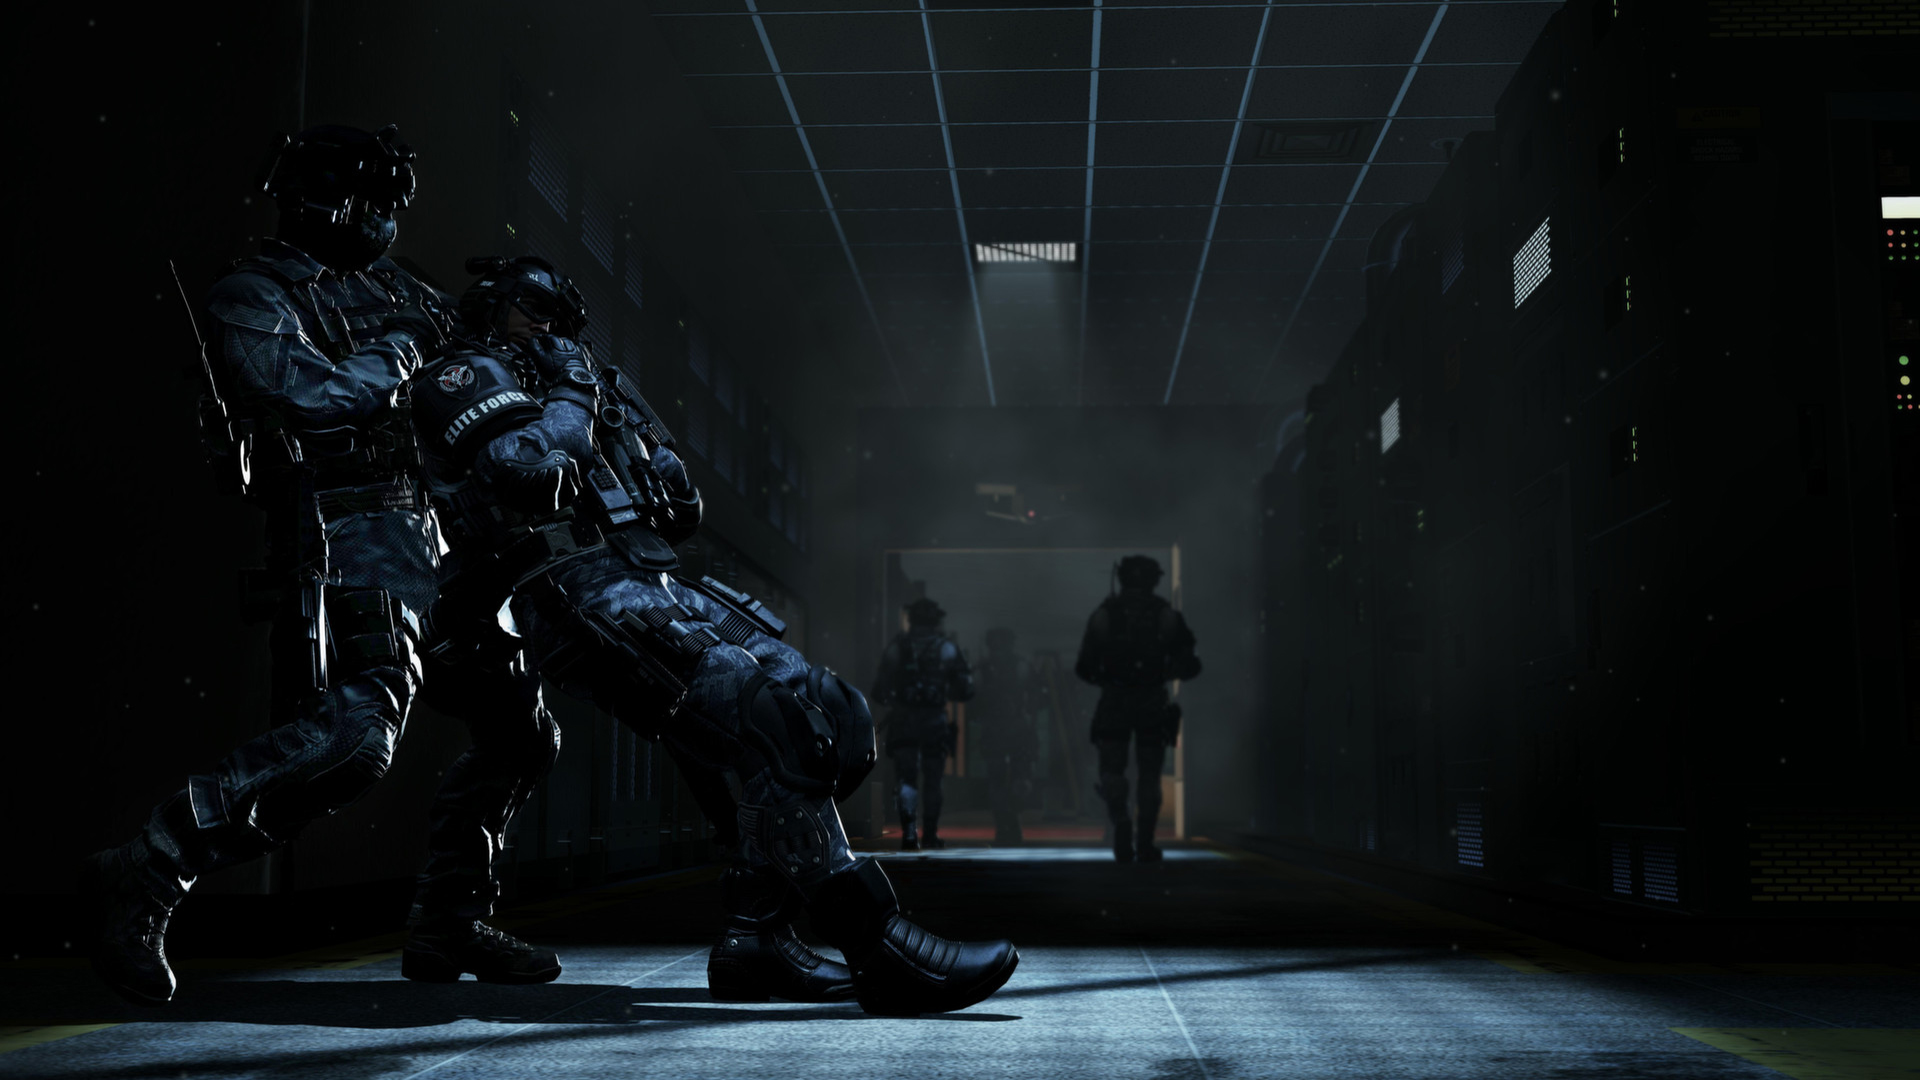 call of duty ghosts game download full version for pc